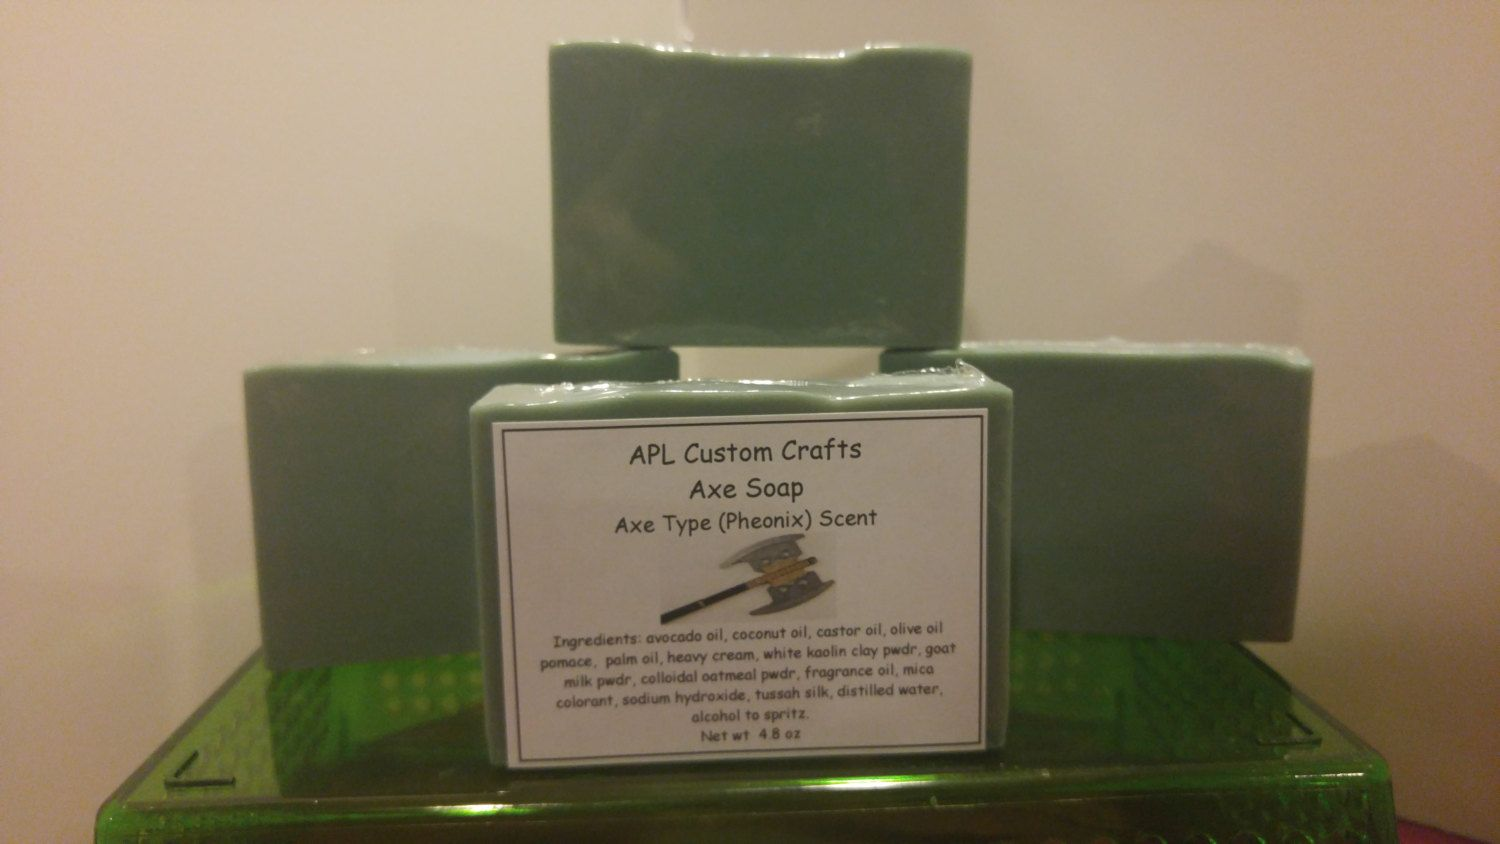 Axe soap -  Axe (Phoenix)  type scent   (like the cologne) by APLcustomcrafts on Etsy